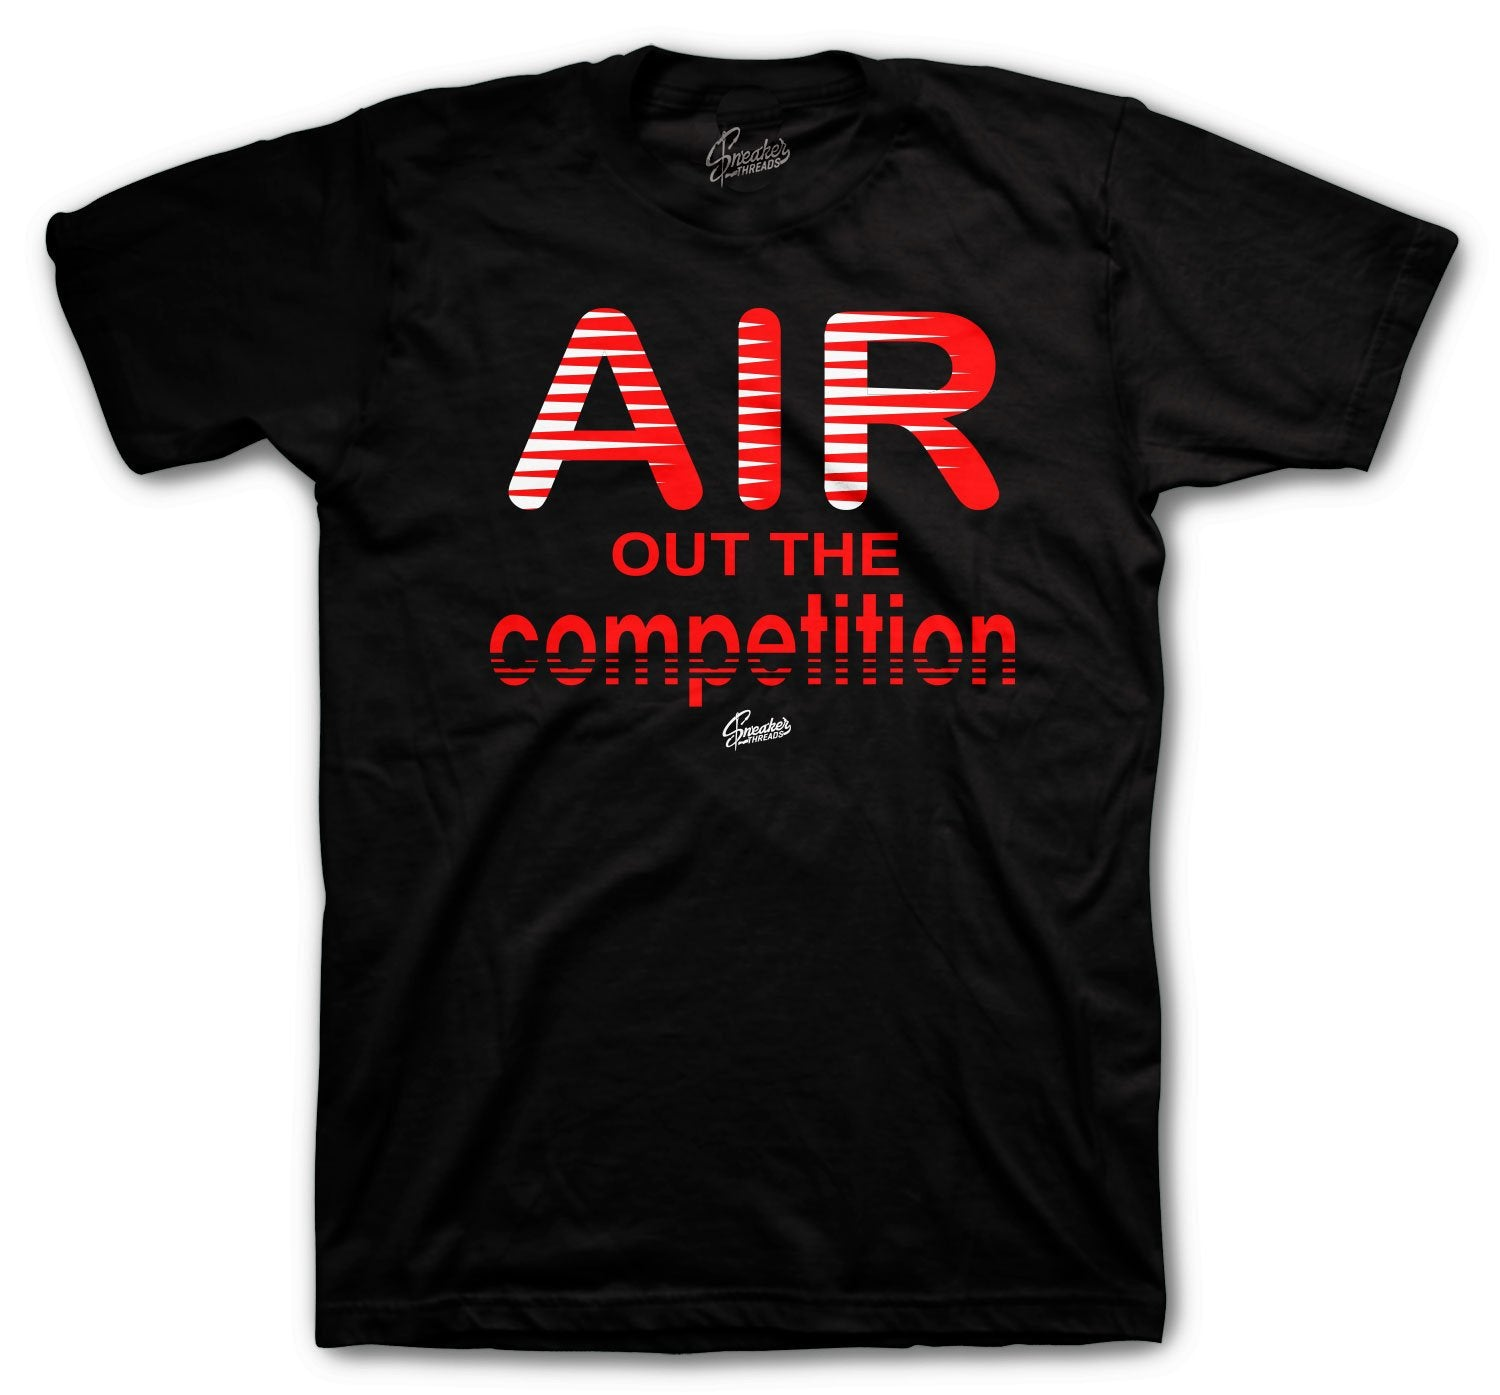 sneaker bred Jordan 11 retro collections matching t shirt collection